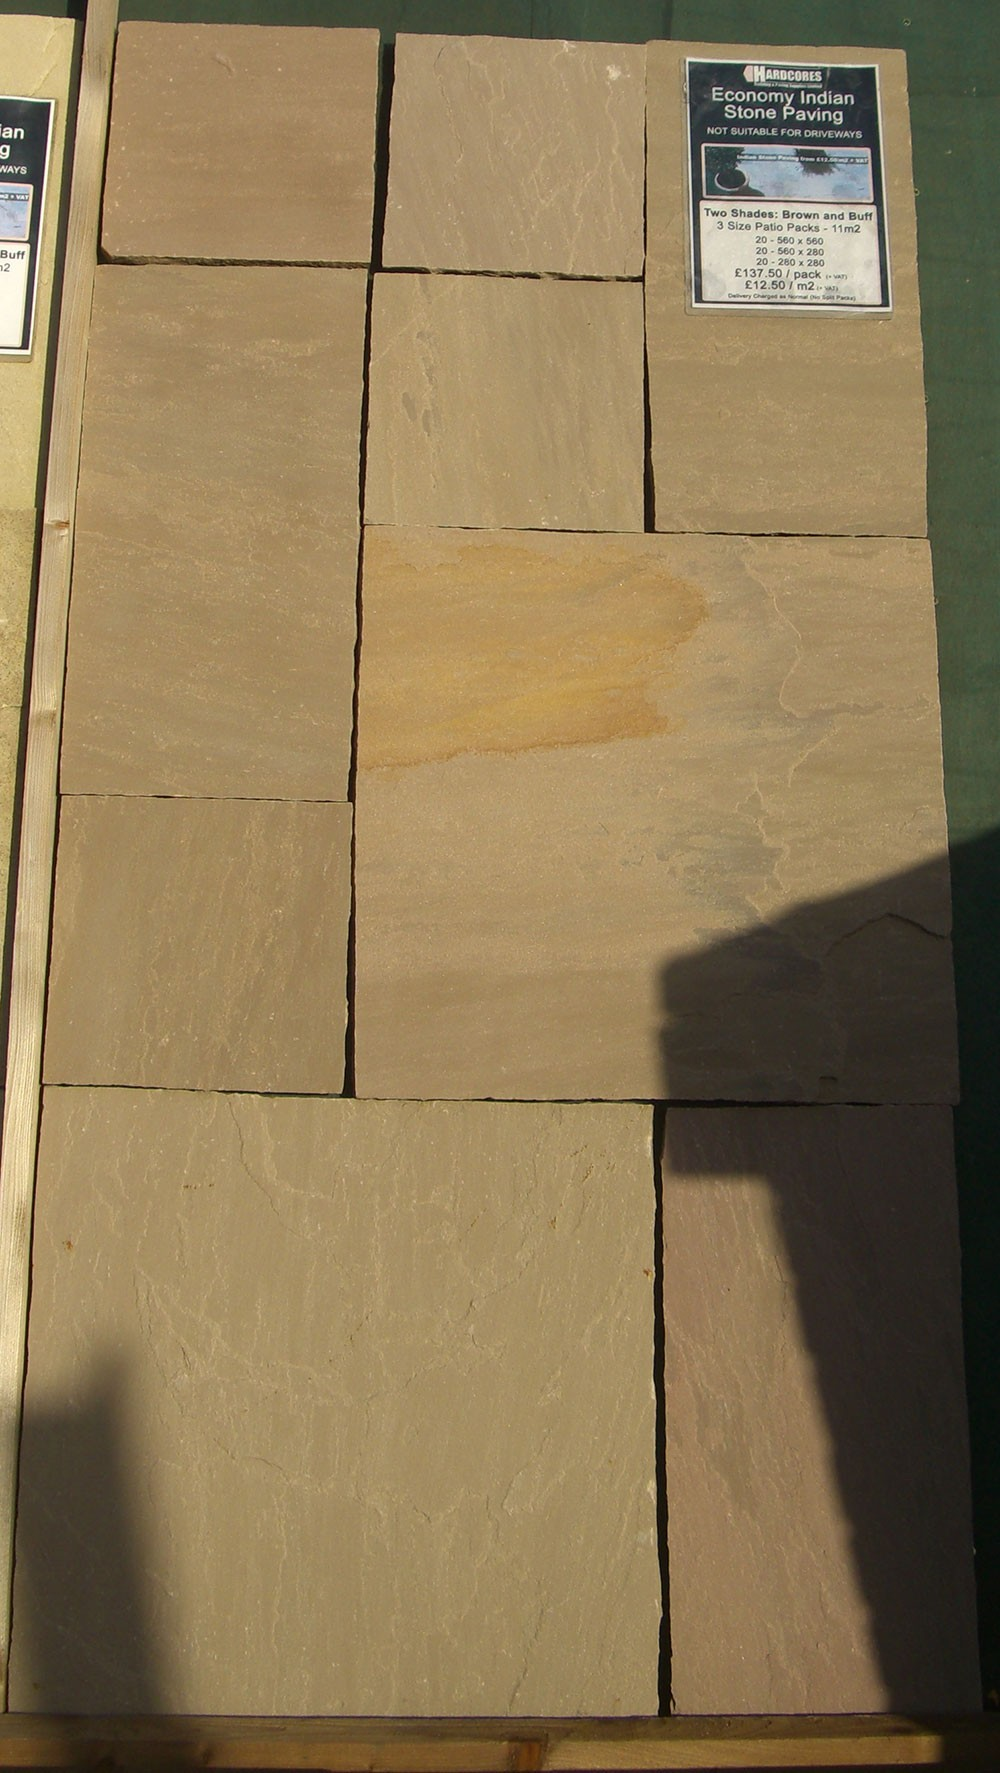 Hardlite - Indian Sandstone Paving - Autumn Blend